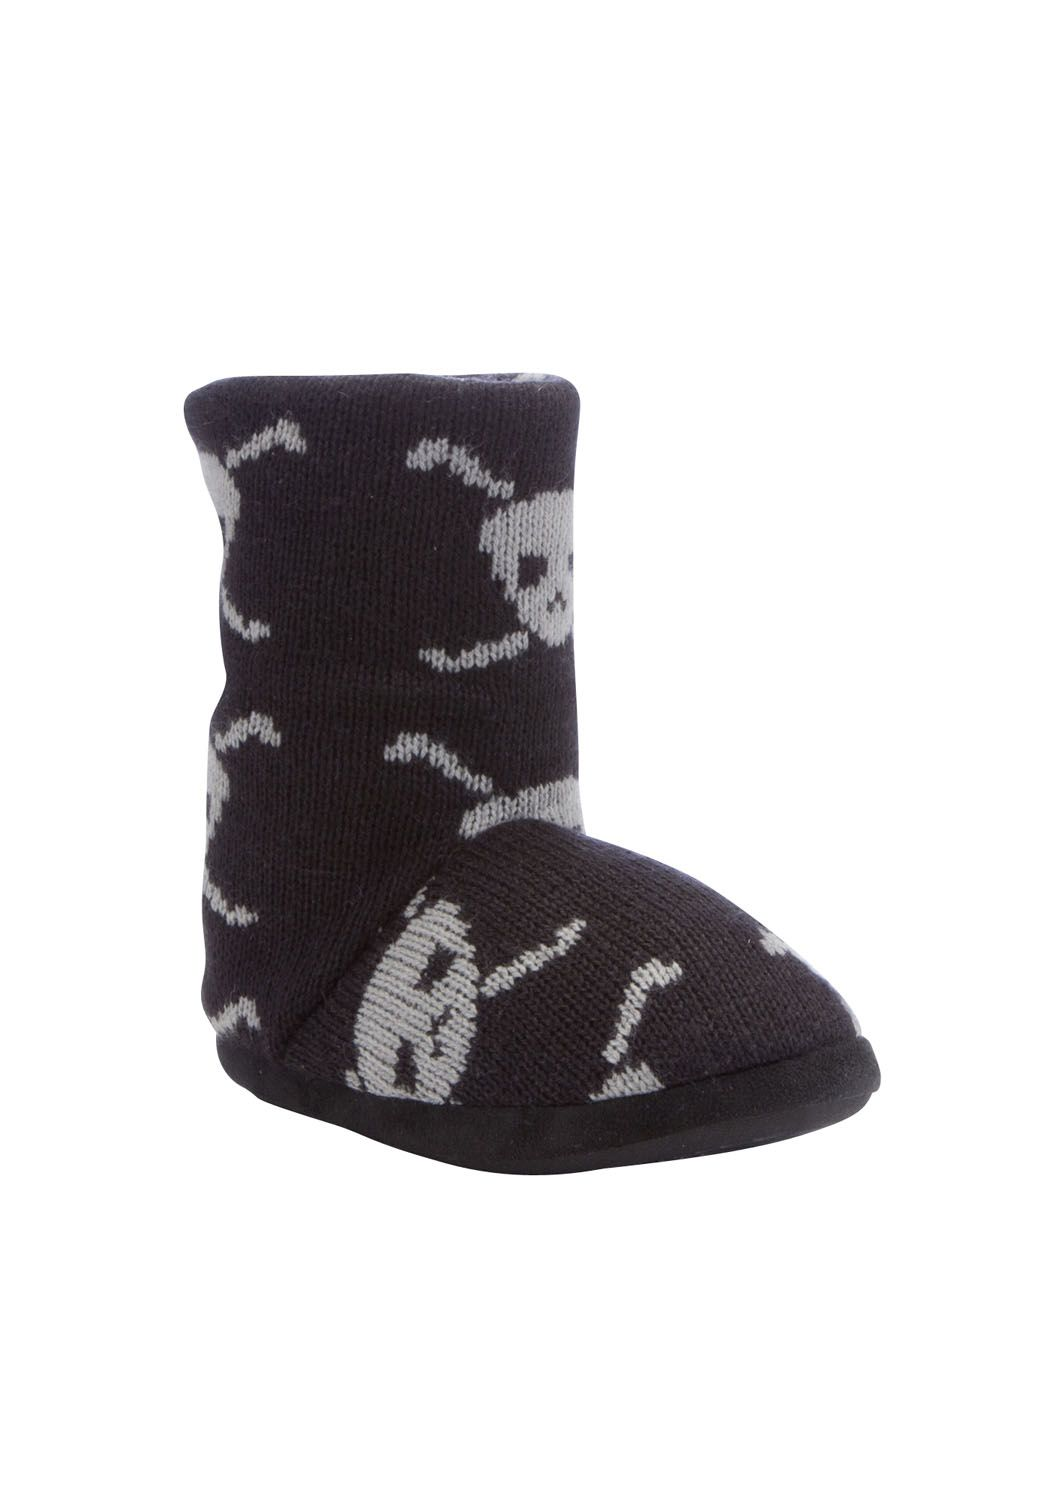 pirate slipper boots clothing at tesco f fleece lined. Black Bedroom Furniture Sets. Home Design Ideas